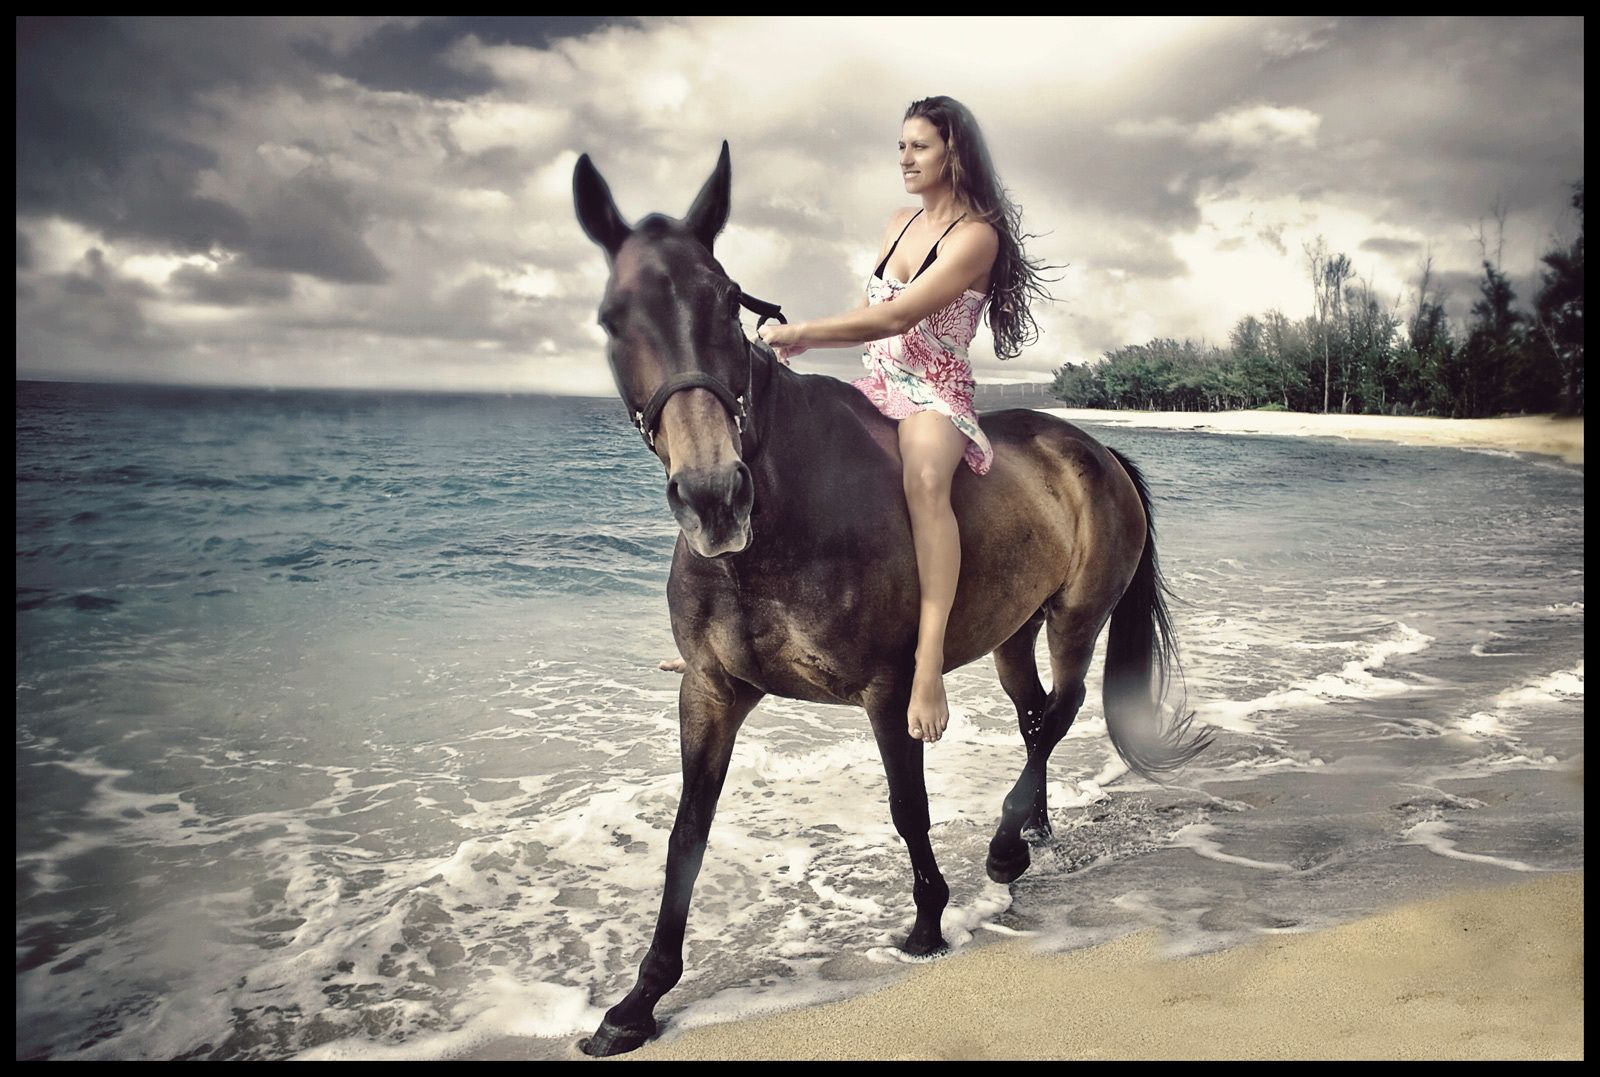 1beach_ride_on_horse